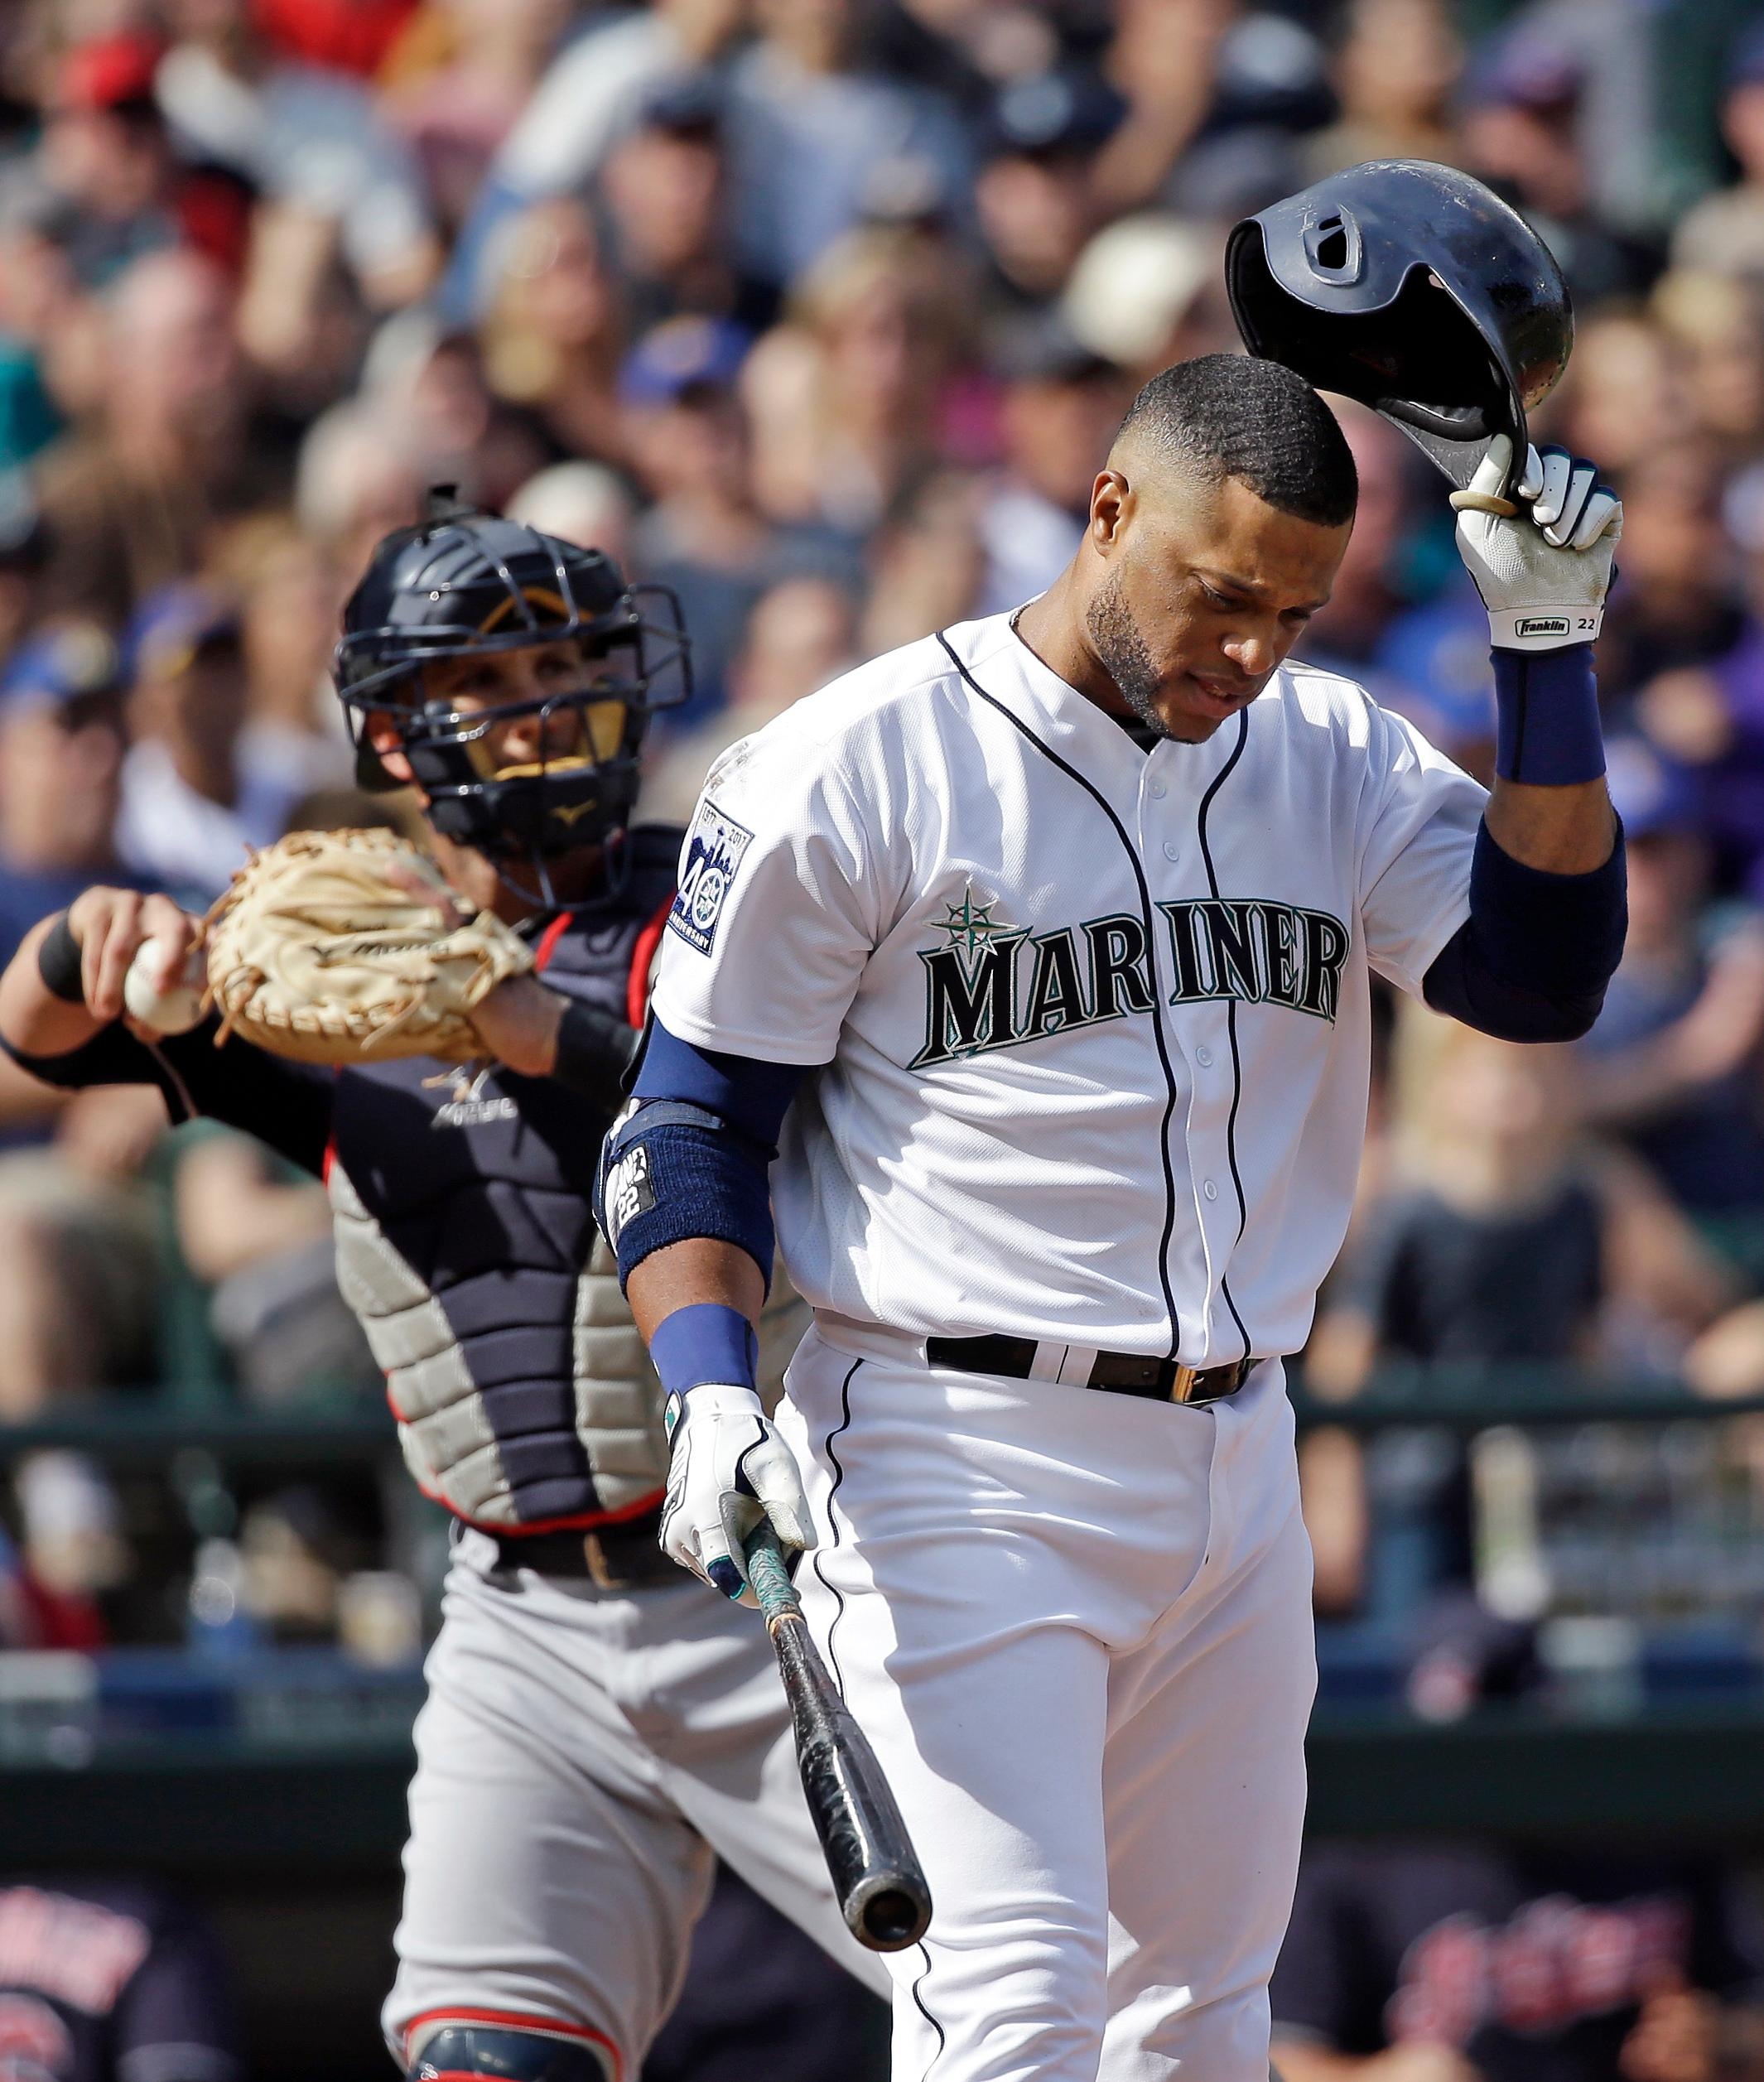 FILE- In this Sept. 23, 2017, file photo, Seattle Mariners' Robinson Cano, right, pulls off his batting helmet after striking out to end the third inning of a baseball game as Cleveland Indians catcher Yan Gomes tosses the ball back to the mound in Seattle. Cano has been suspended 80 games for violating baseball's joint drug agreement, the league announced Tuesday, May 15, 2018. (AP Photo/Elaine Thompson, File)